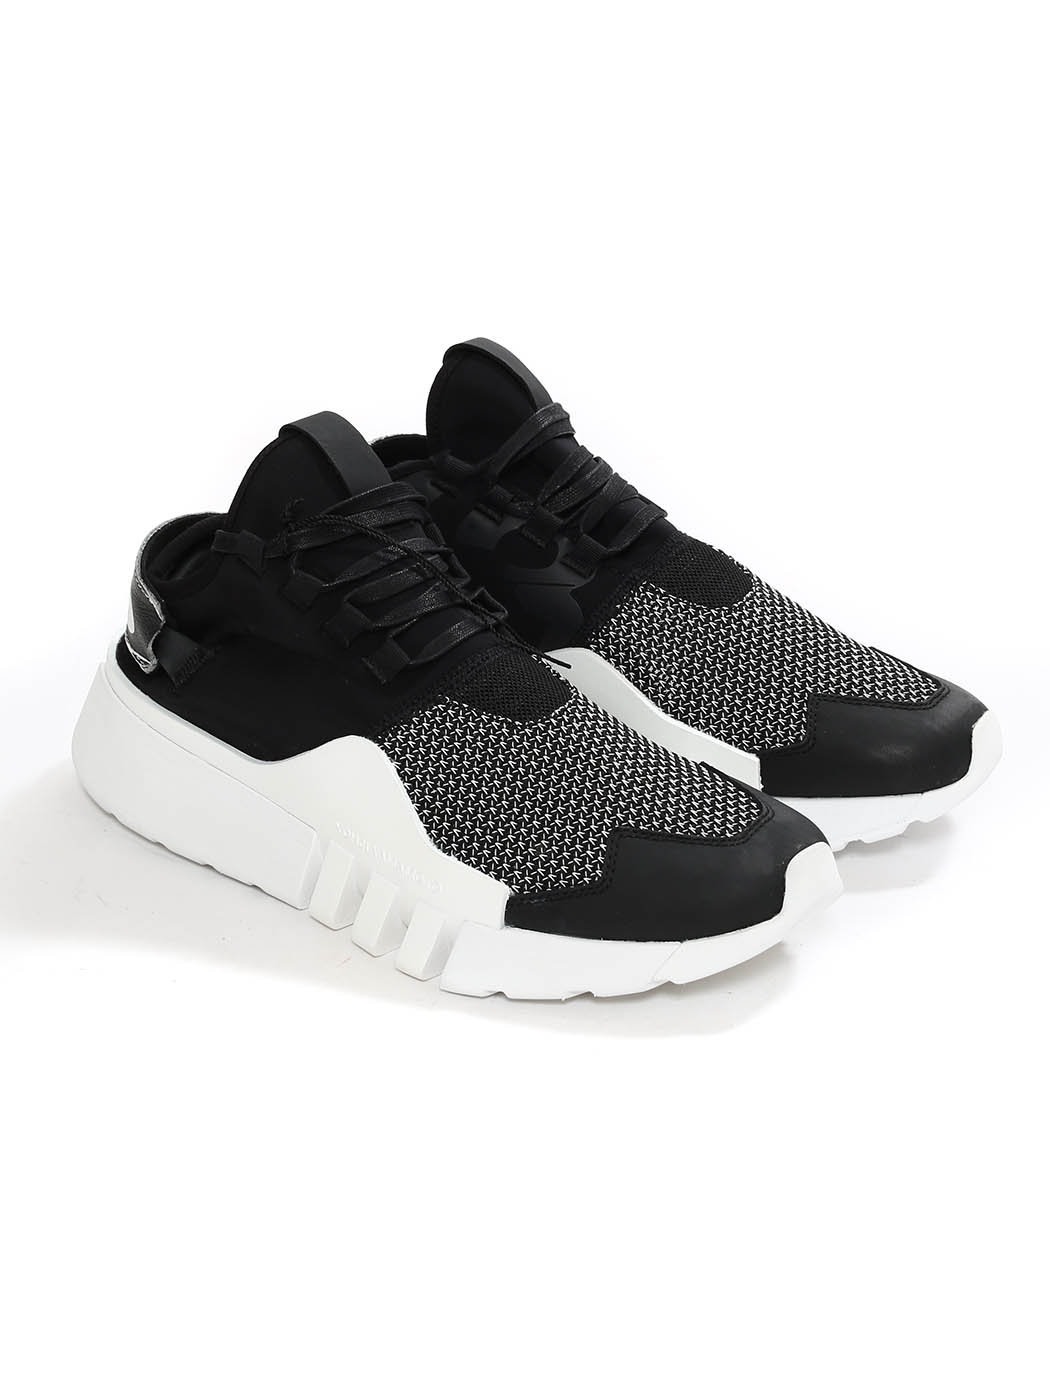 Adidas Y 3 Baskets Taille 8 Chaussures pour homme Basket